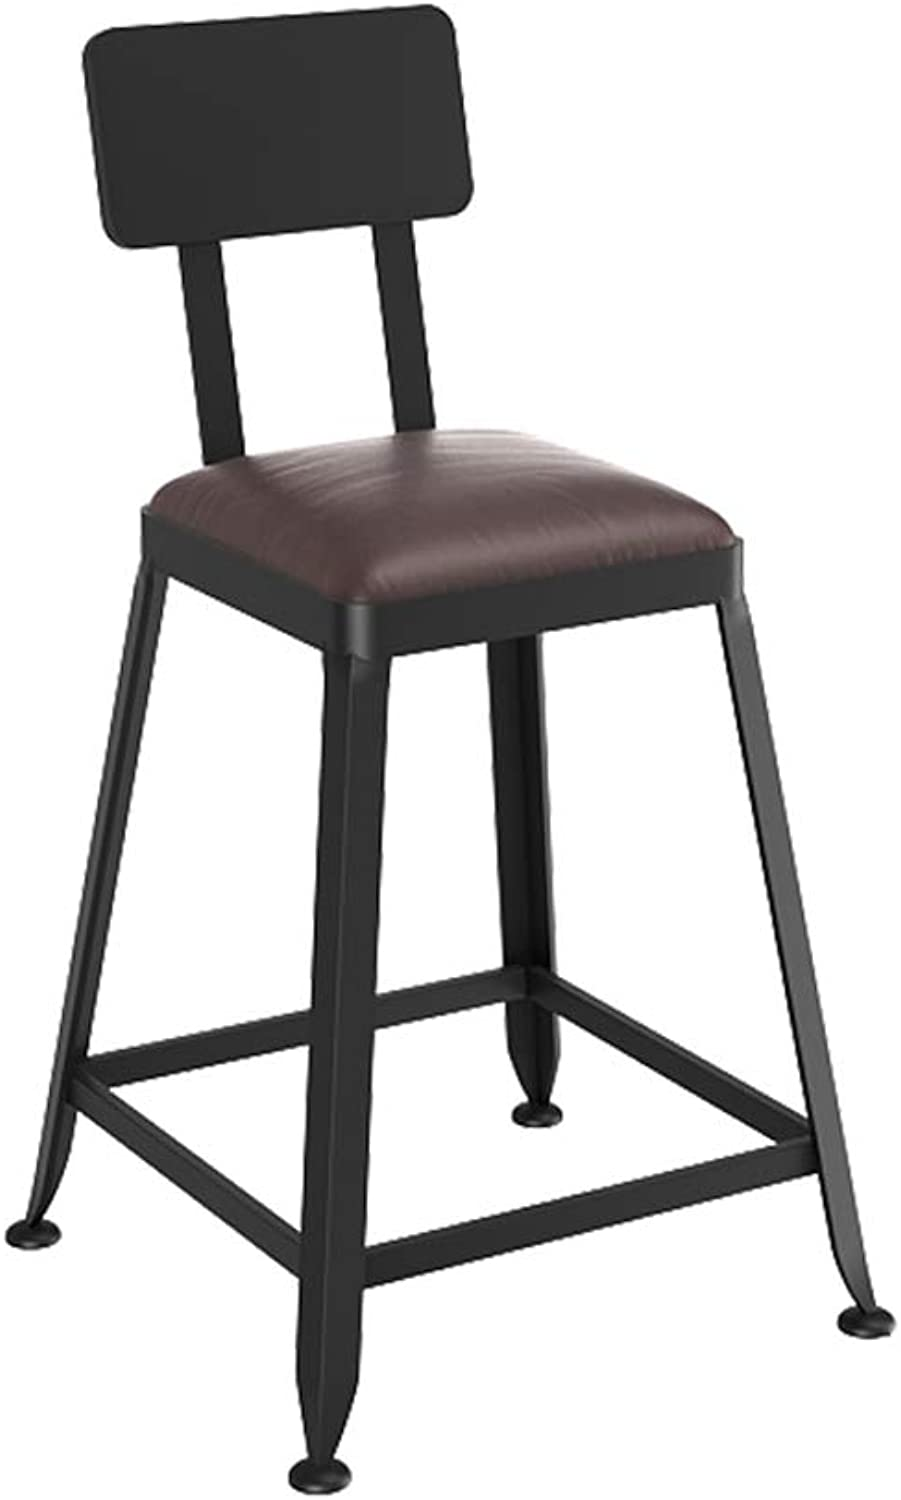 Industrial Wind Wrought Iron Bar Chair Solid Wood Bar Stool High Stools Bar Chairs (Size   45CM)